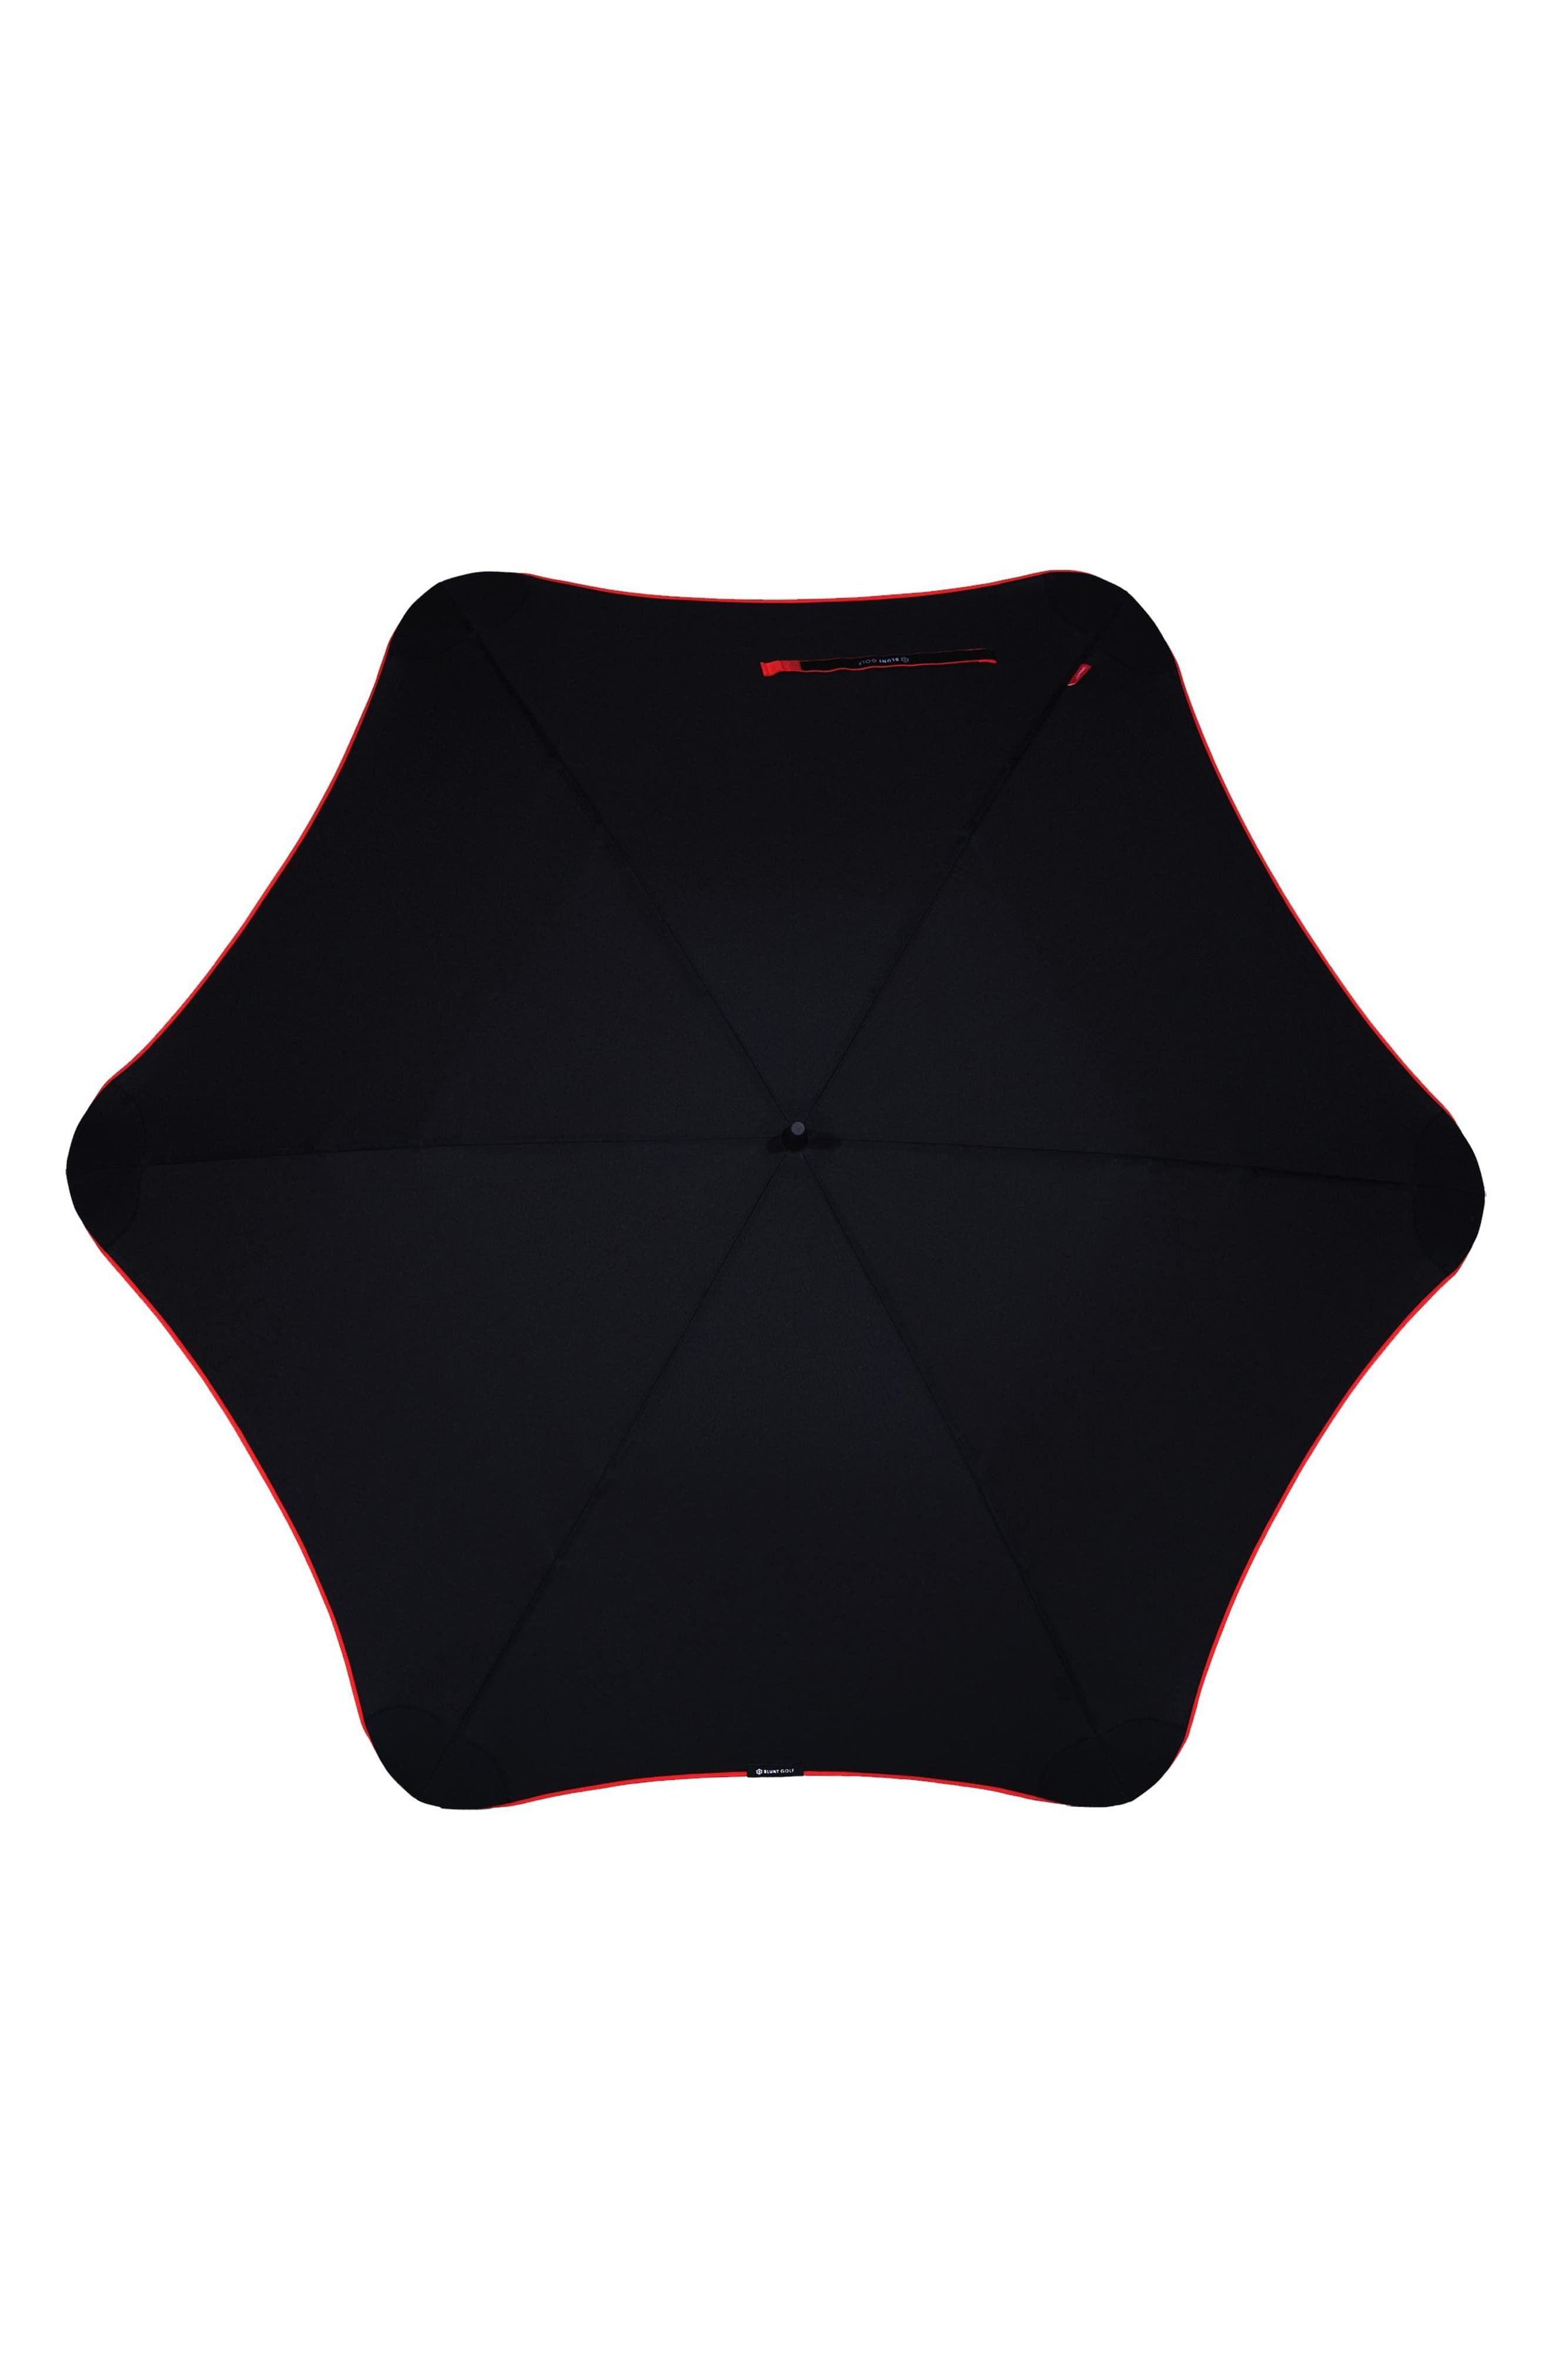 Golf Umbrella,                             Alternate thumbnail 2, color,                             BLACK